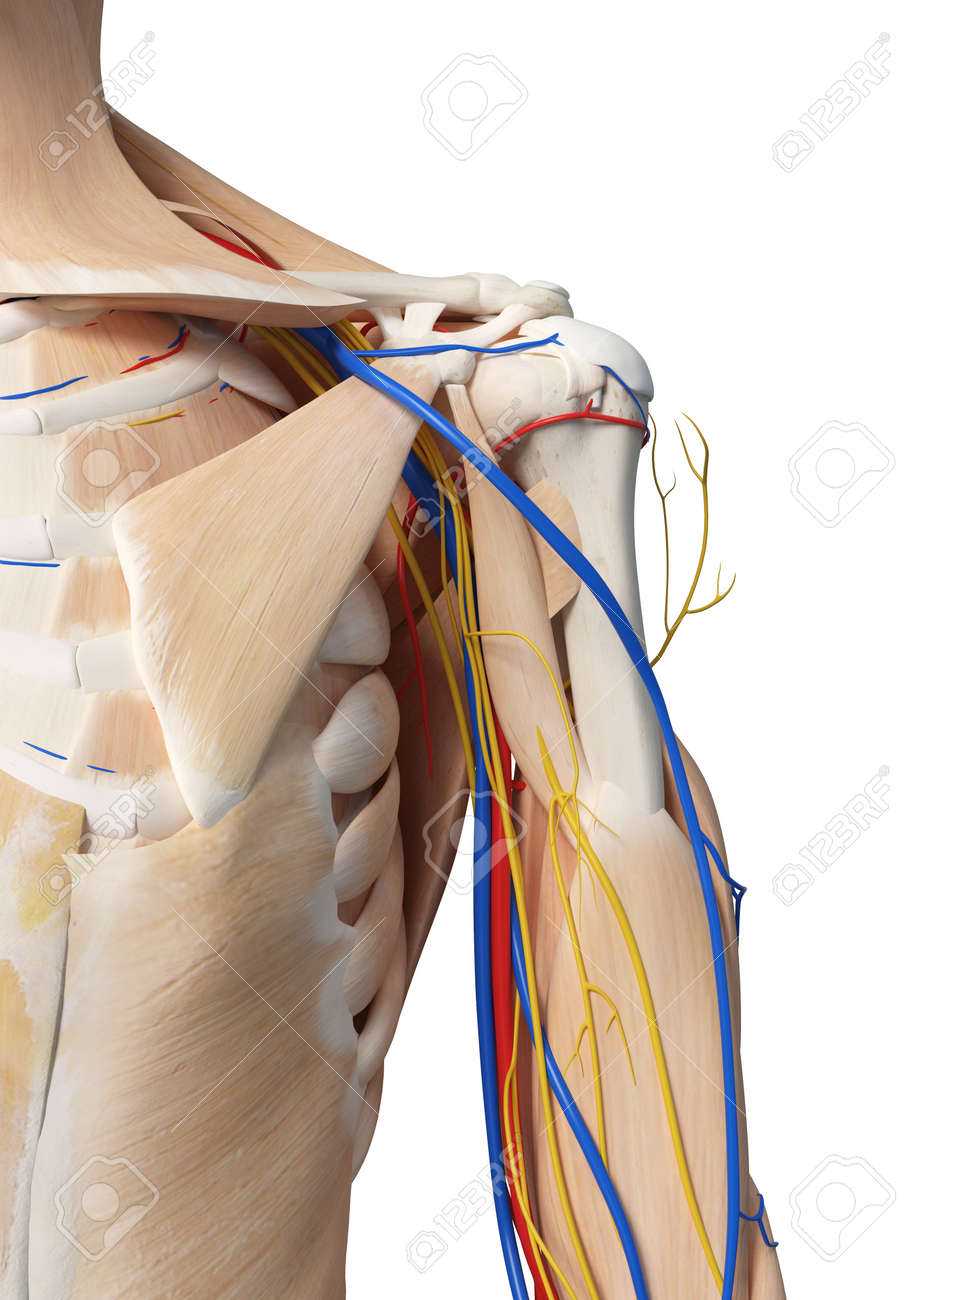 3d Rendered Medically Accurate Illustration Of The Shoulder Anatomy